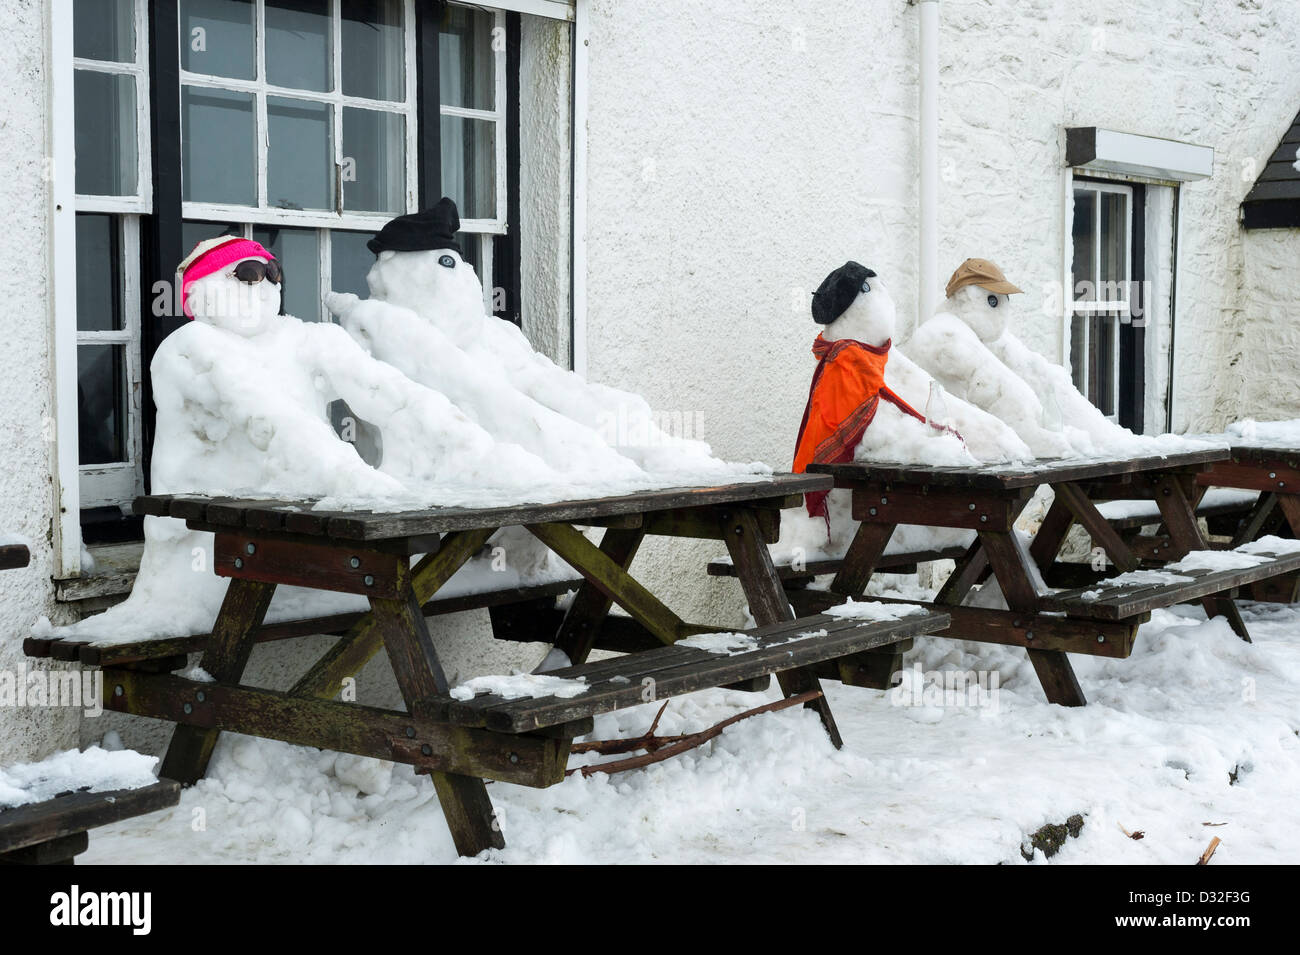 Snowy winter weather on Dartmoor by the Warren House Inn. - Stock Image